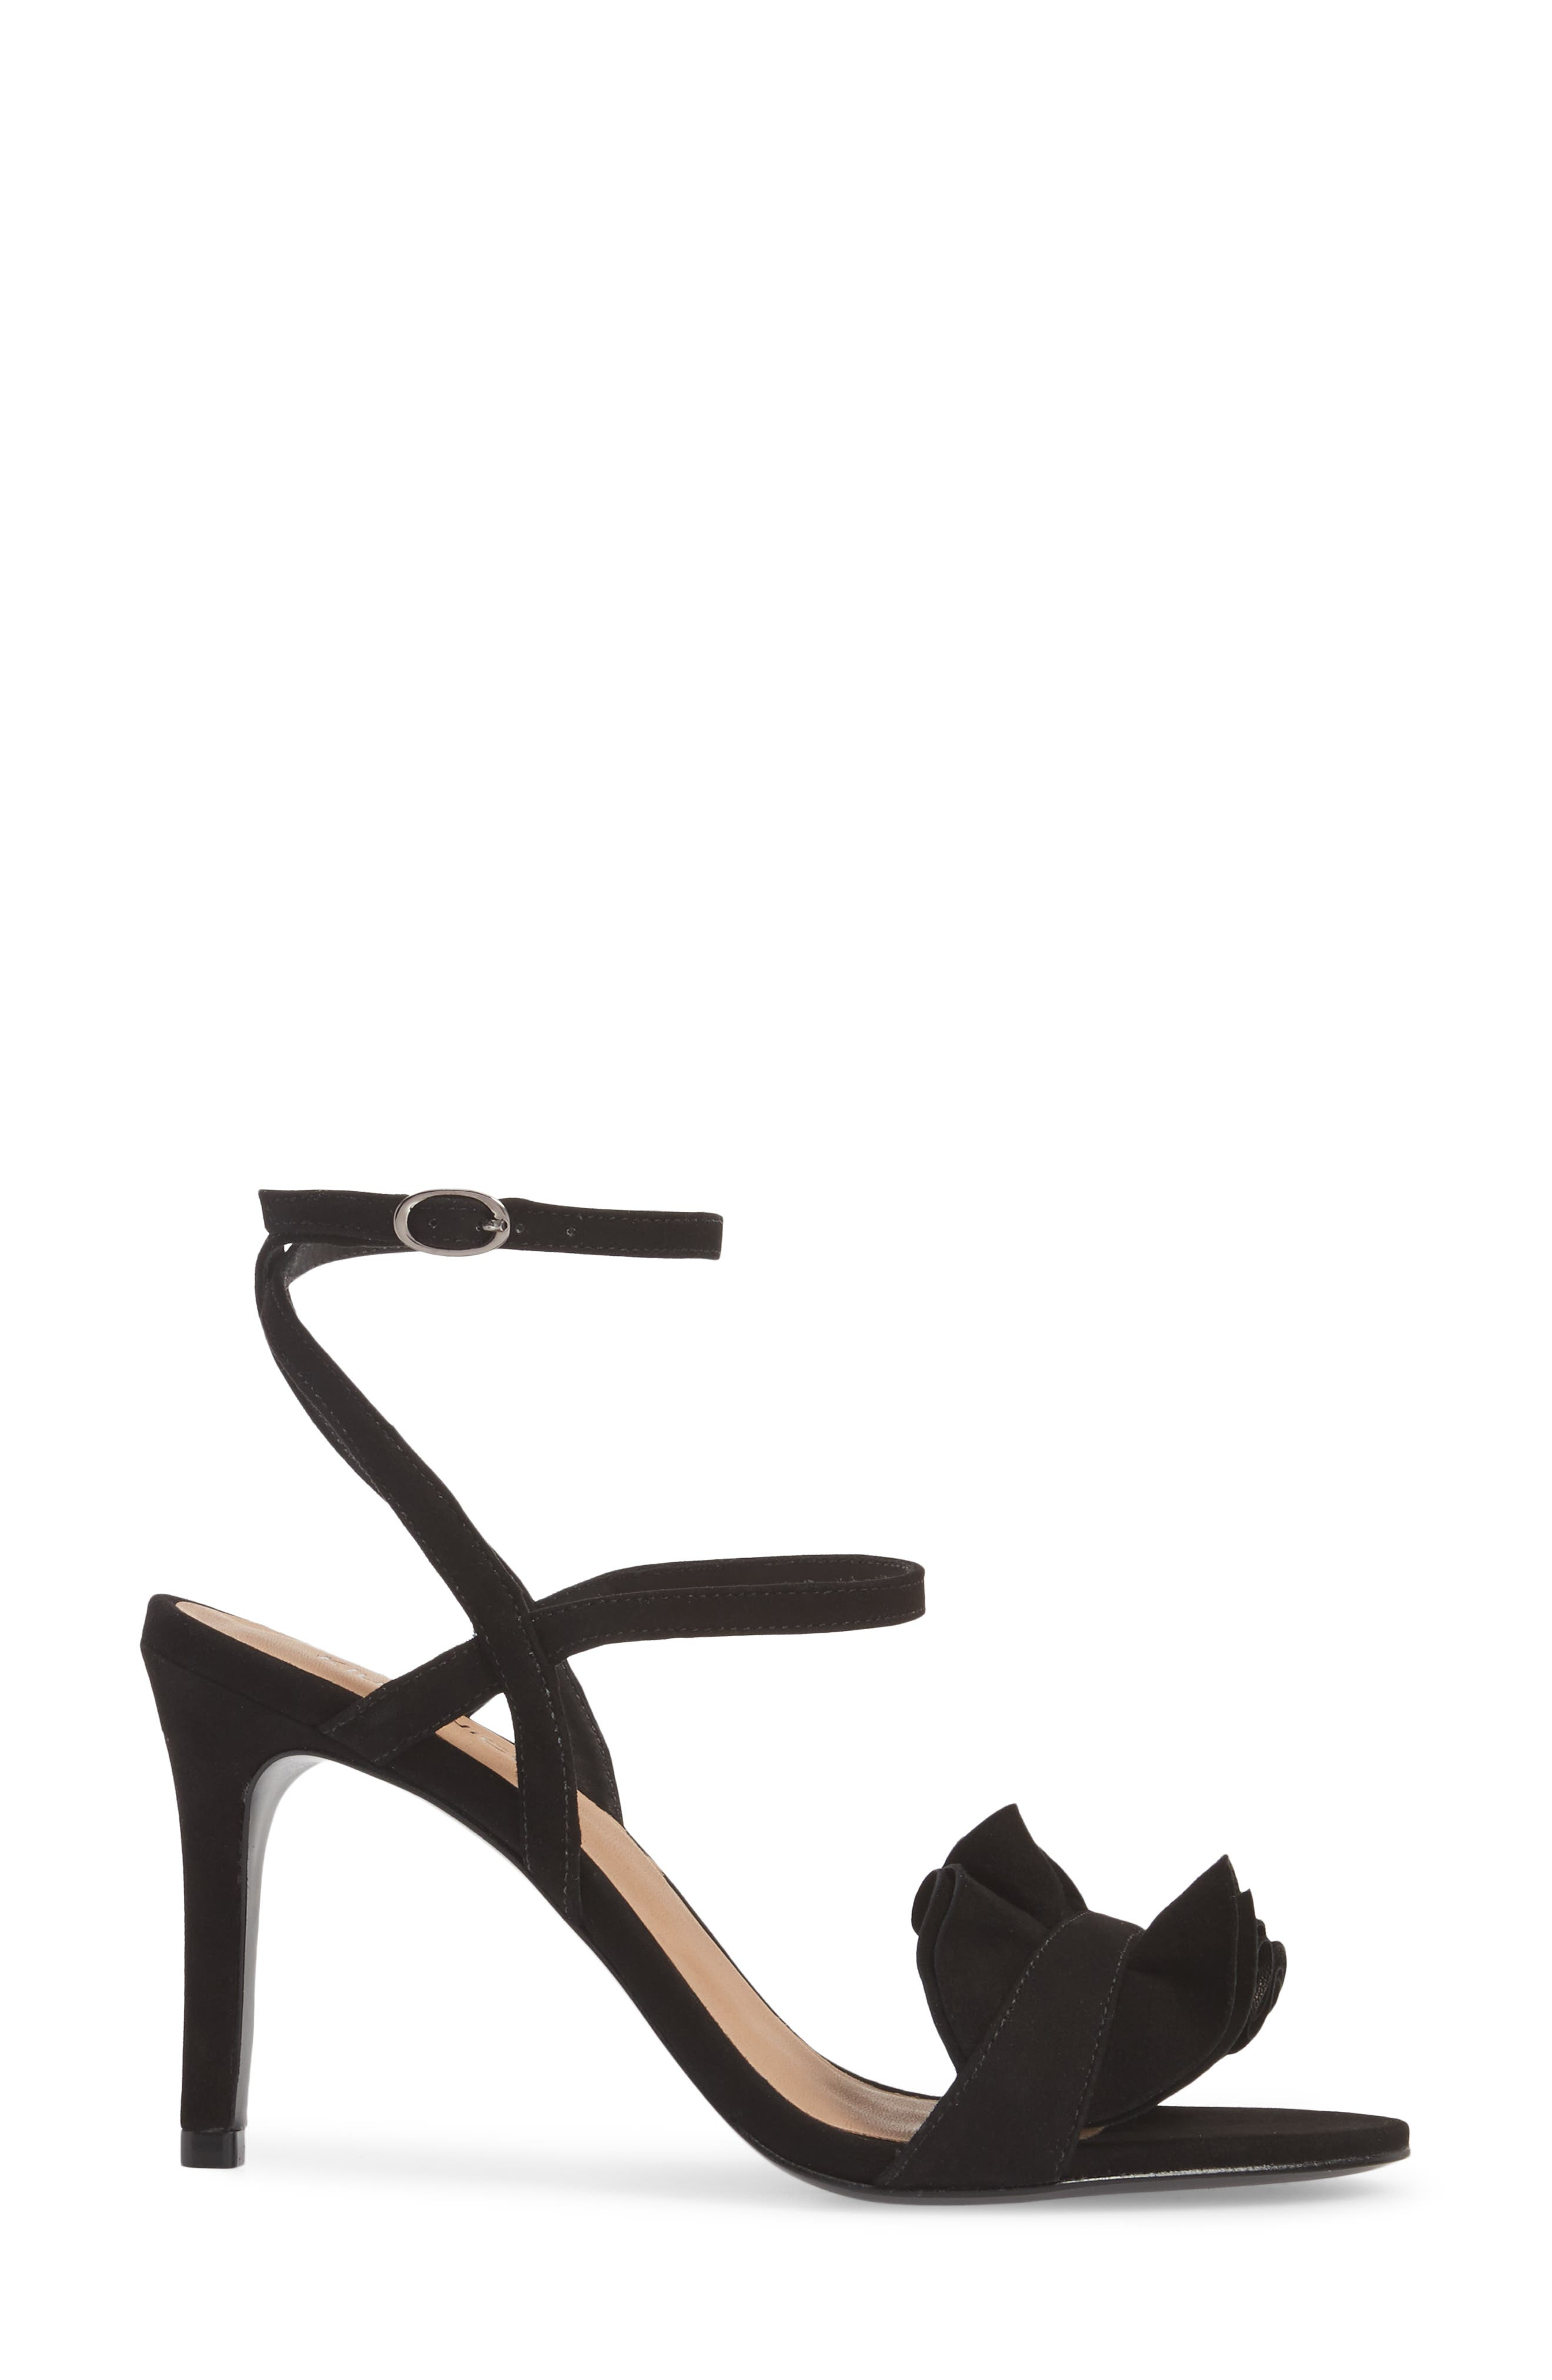 Ansley Sandal,                             Alternate thumbnail 3, color,                             BLACK SUEDE